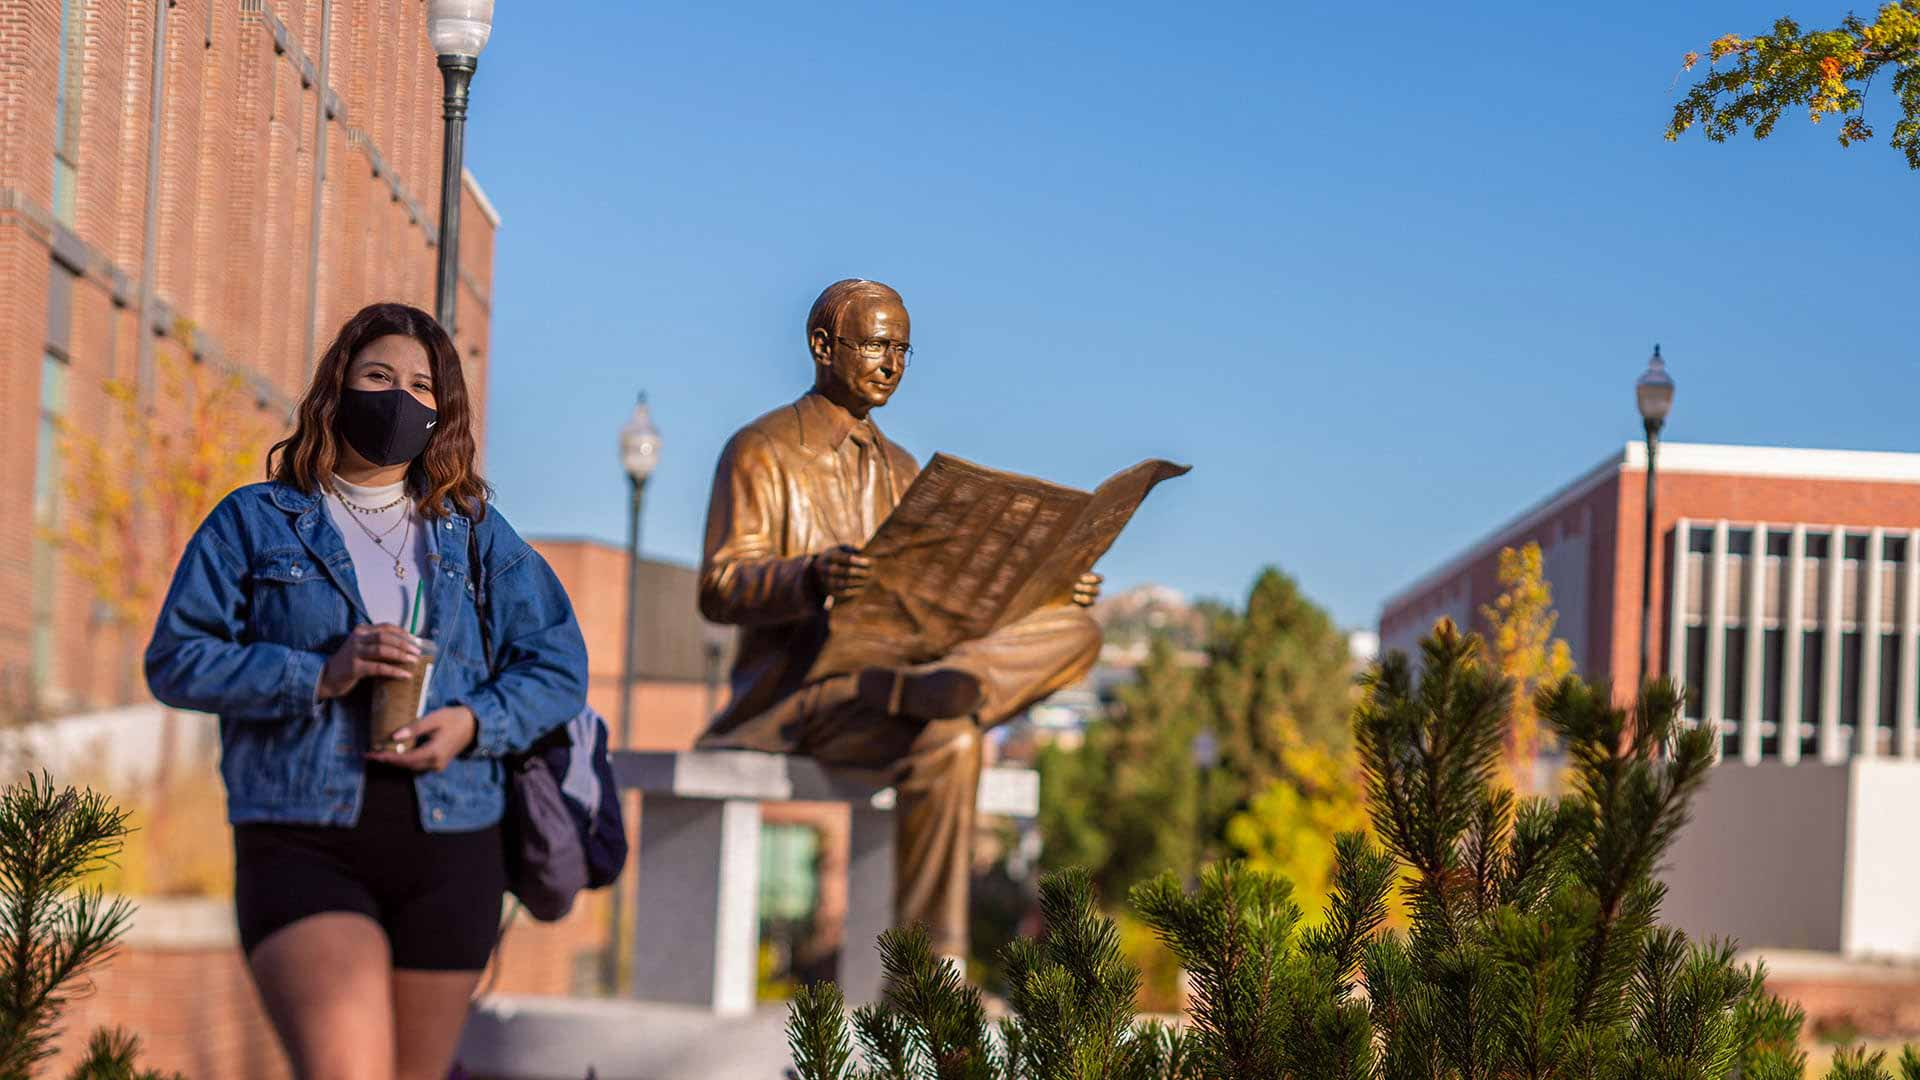 A student wears a mask and holds a coffee cup as they stand in front of the Senator Richard Bryan statute on the campus of the University of Nevada, Reno.